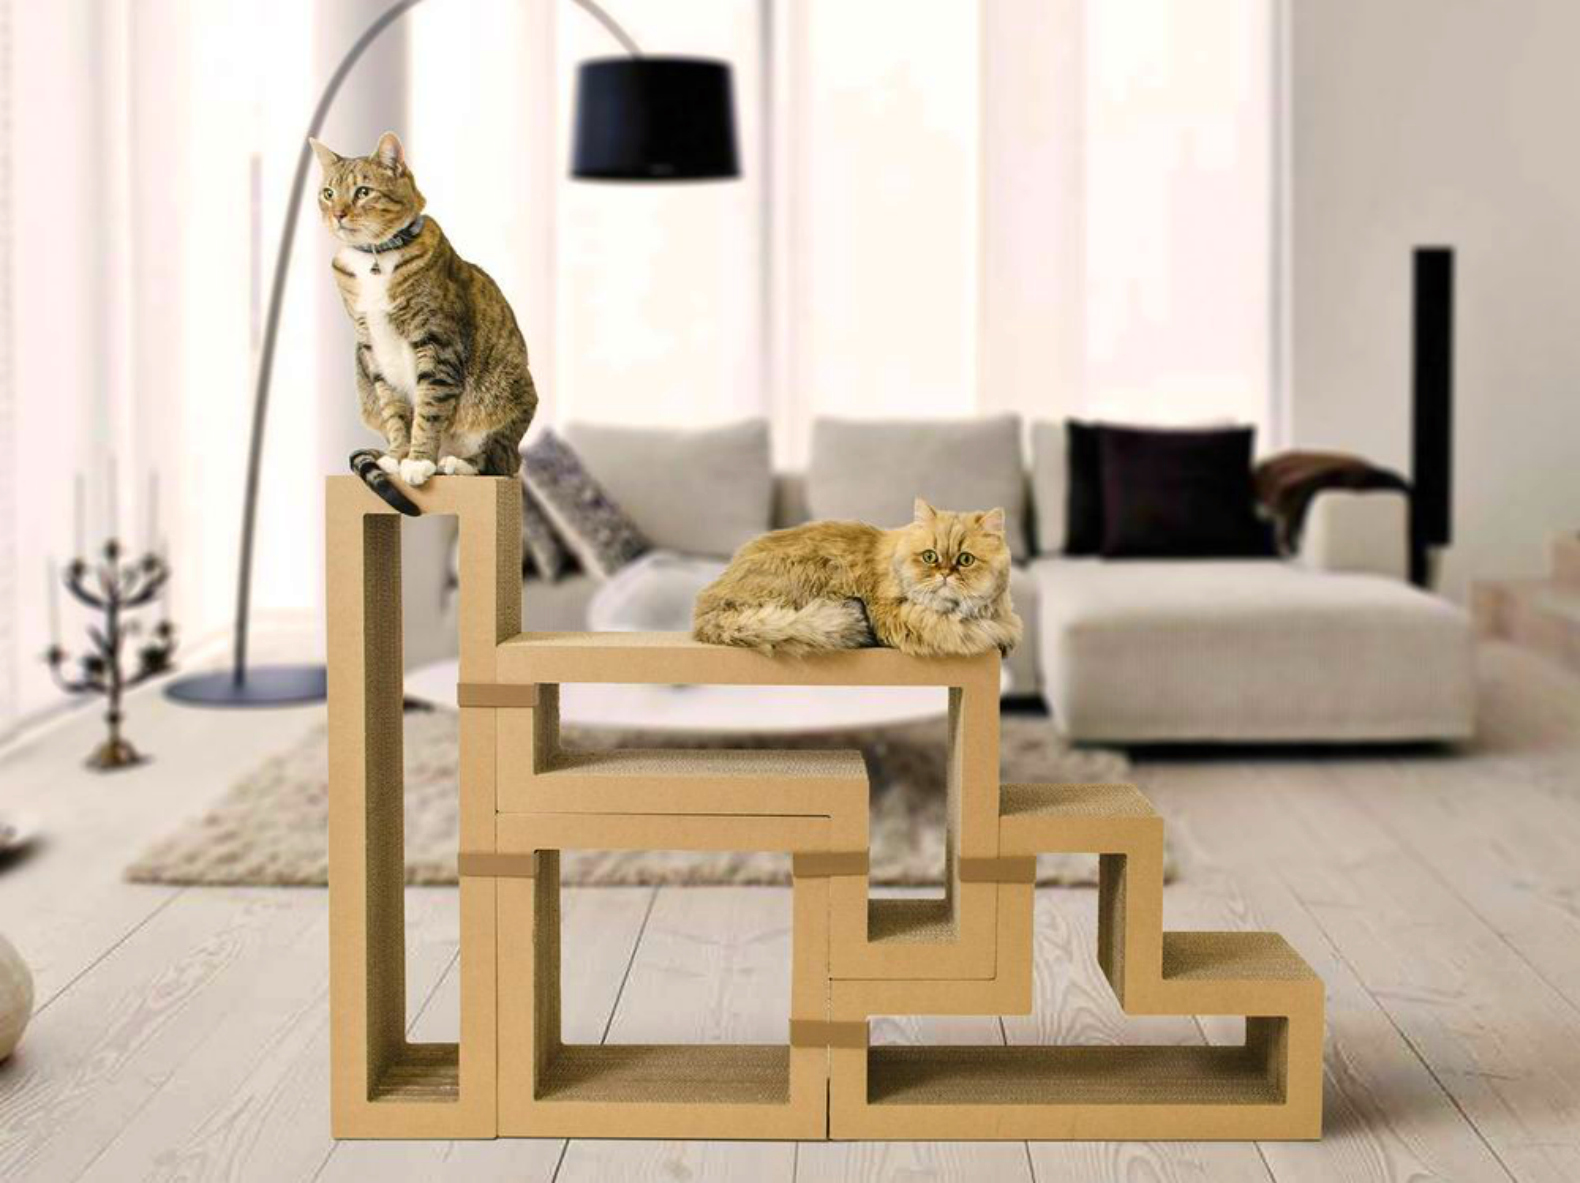 Incroyable Playful KATRIS Scratching Post Blocks Fit Together Like Tetris For Cats